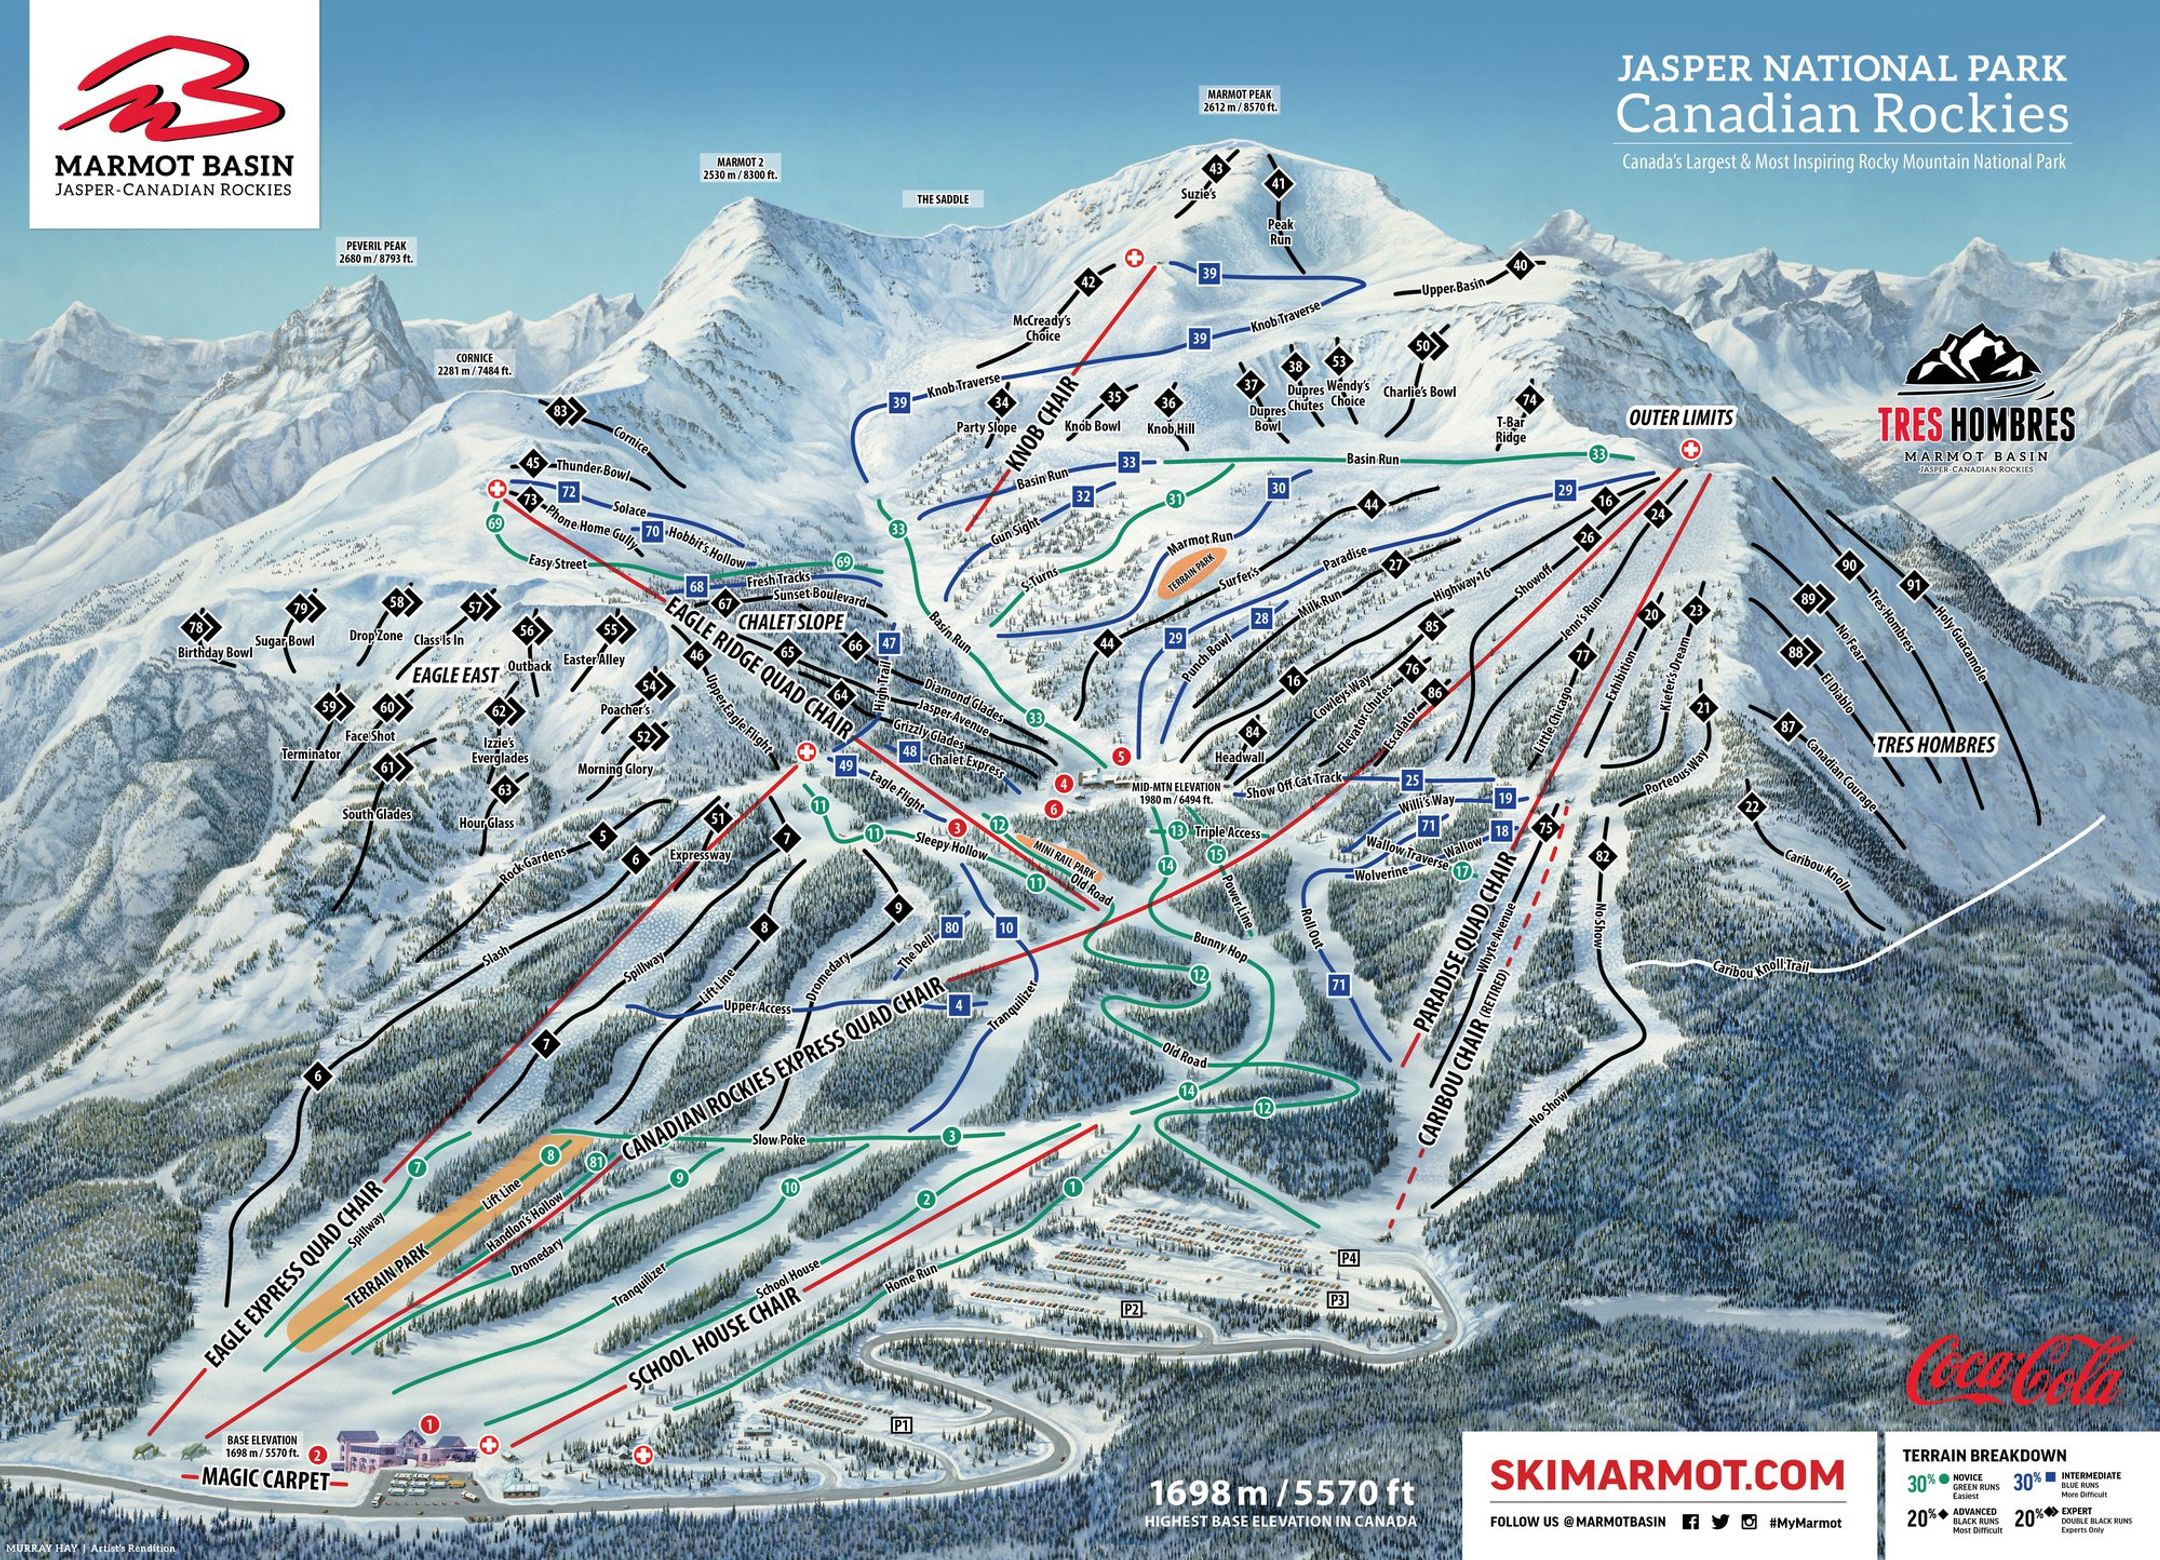 Marmot Basin ski-resort-trail-map Canada ripatrip